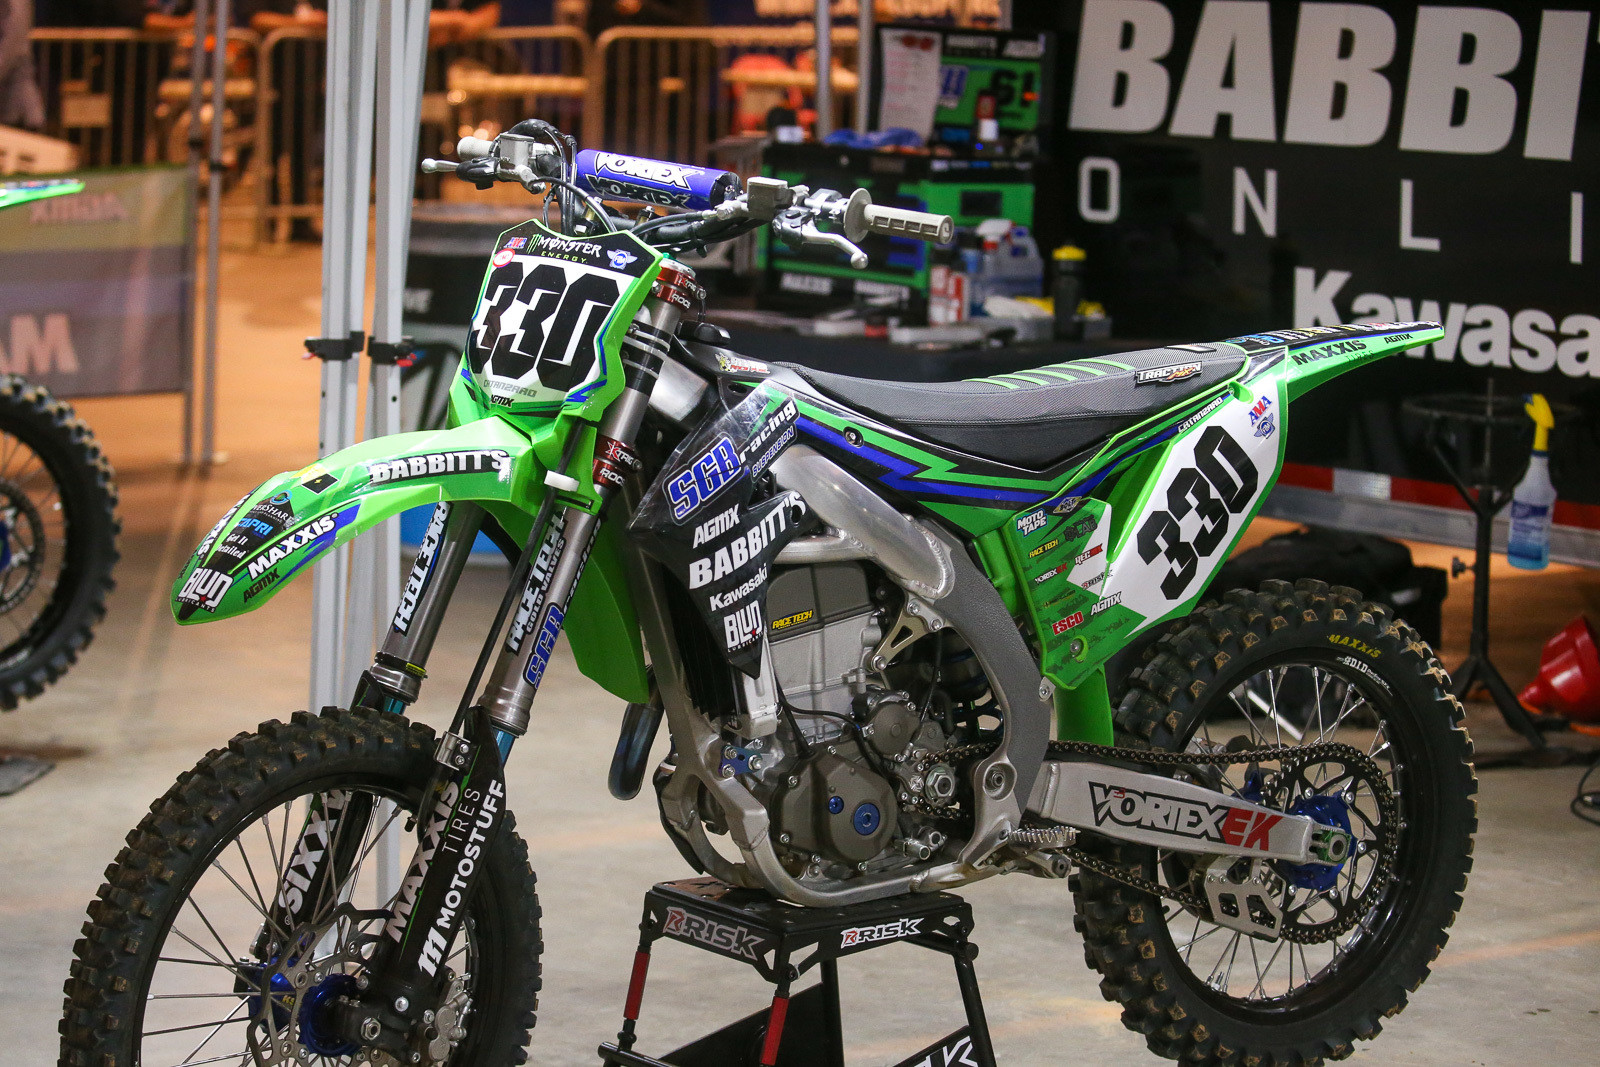 AJ Catanzaro's SGB/Maxxis/Babbit's Kawasaki. He and Alex Ray are teamed up this season.